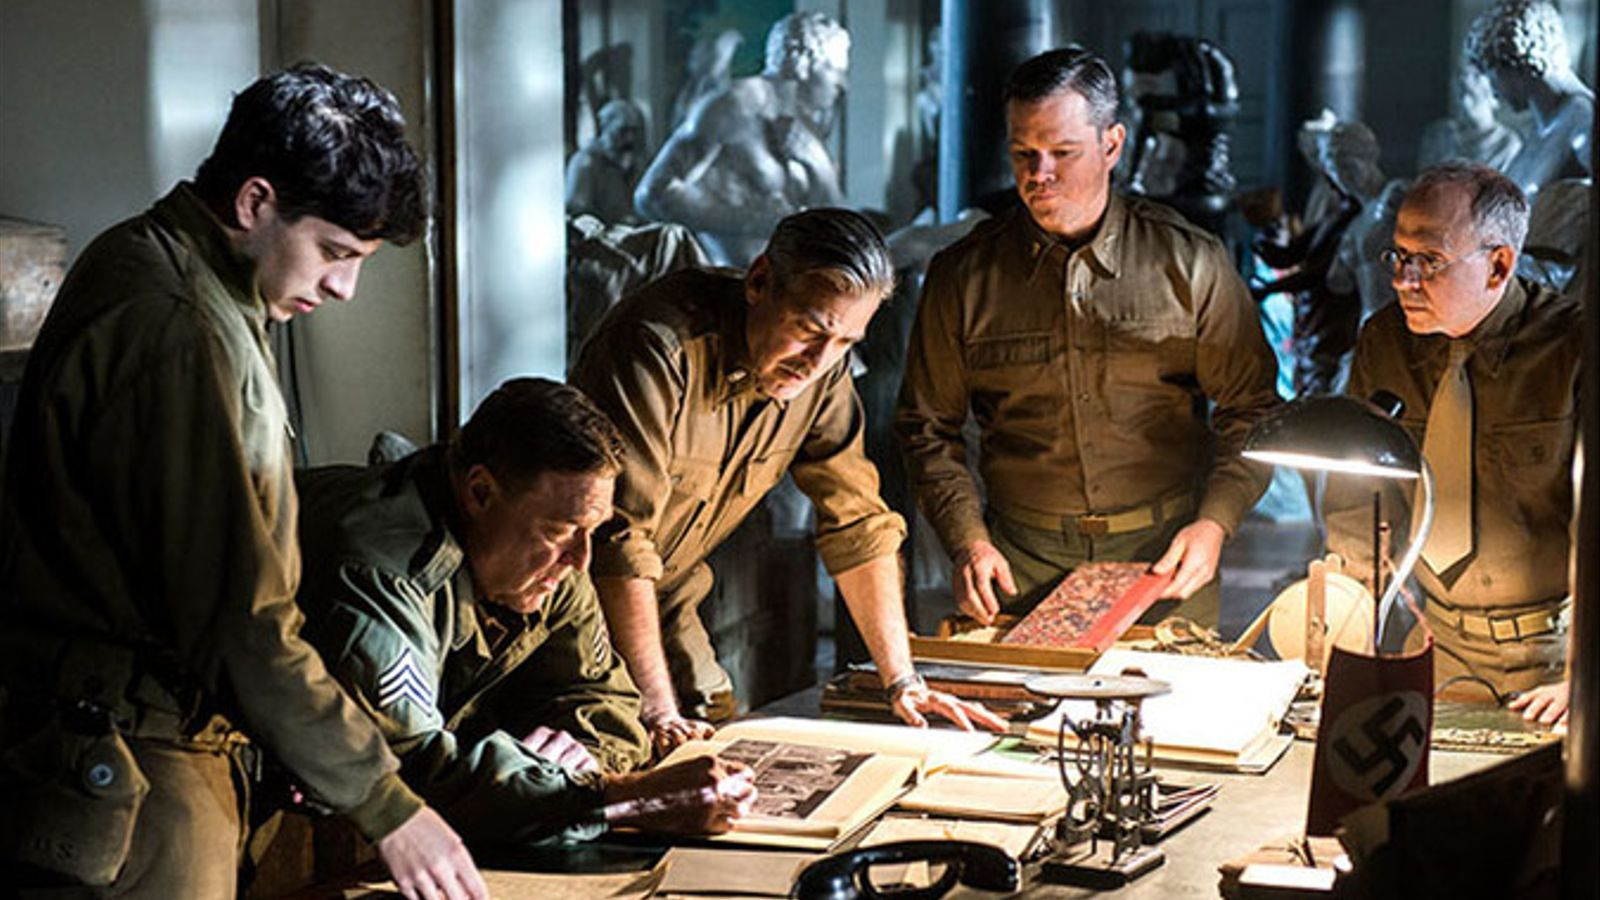 Tràiler de 'The monuments men', de George Clooney